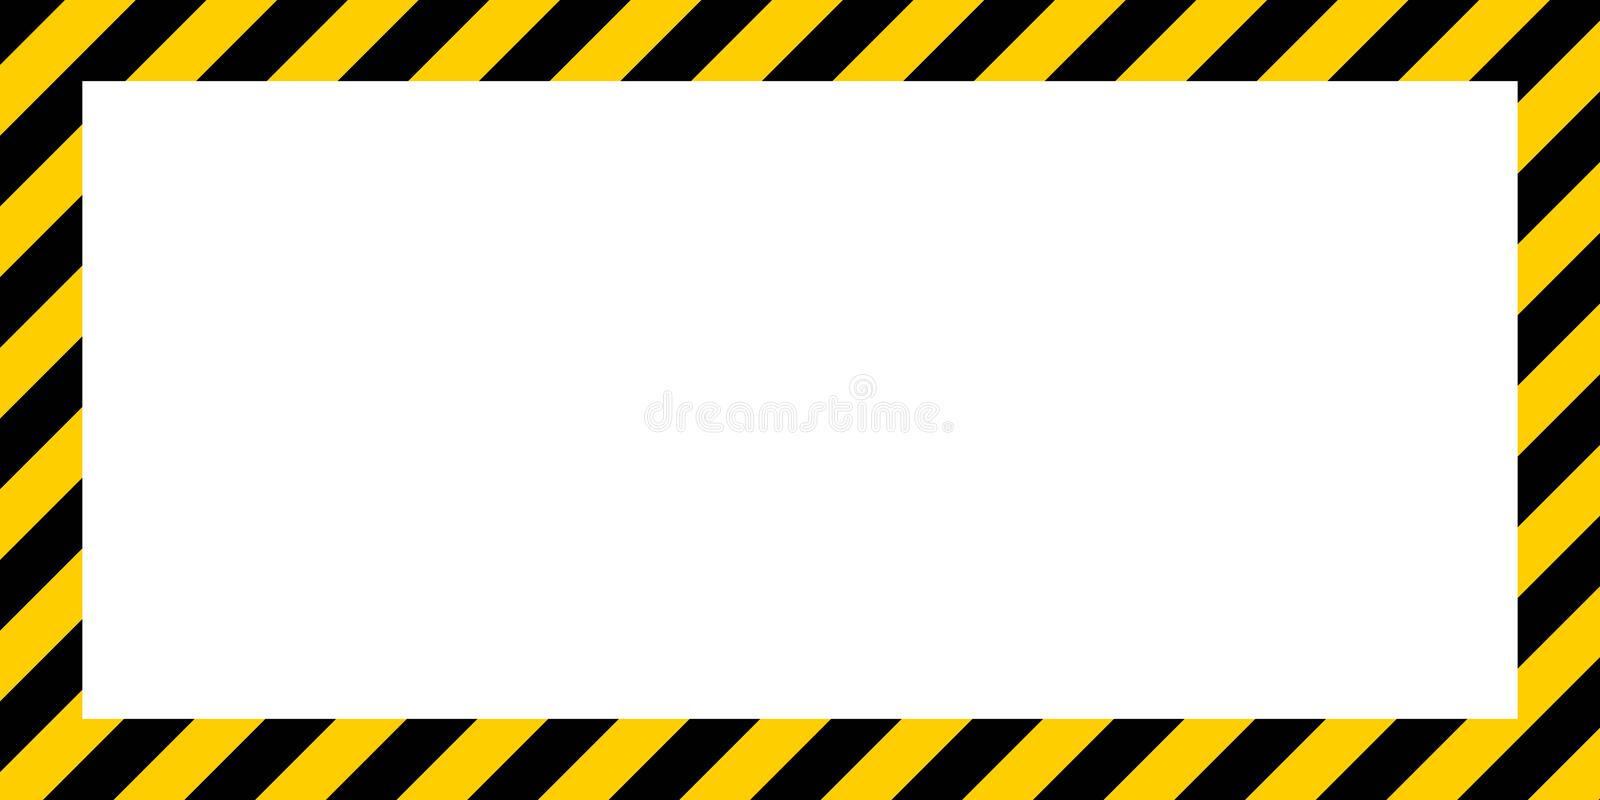 Warning striped rectangular background border yellow and black color Construction warning border stock illustration